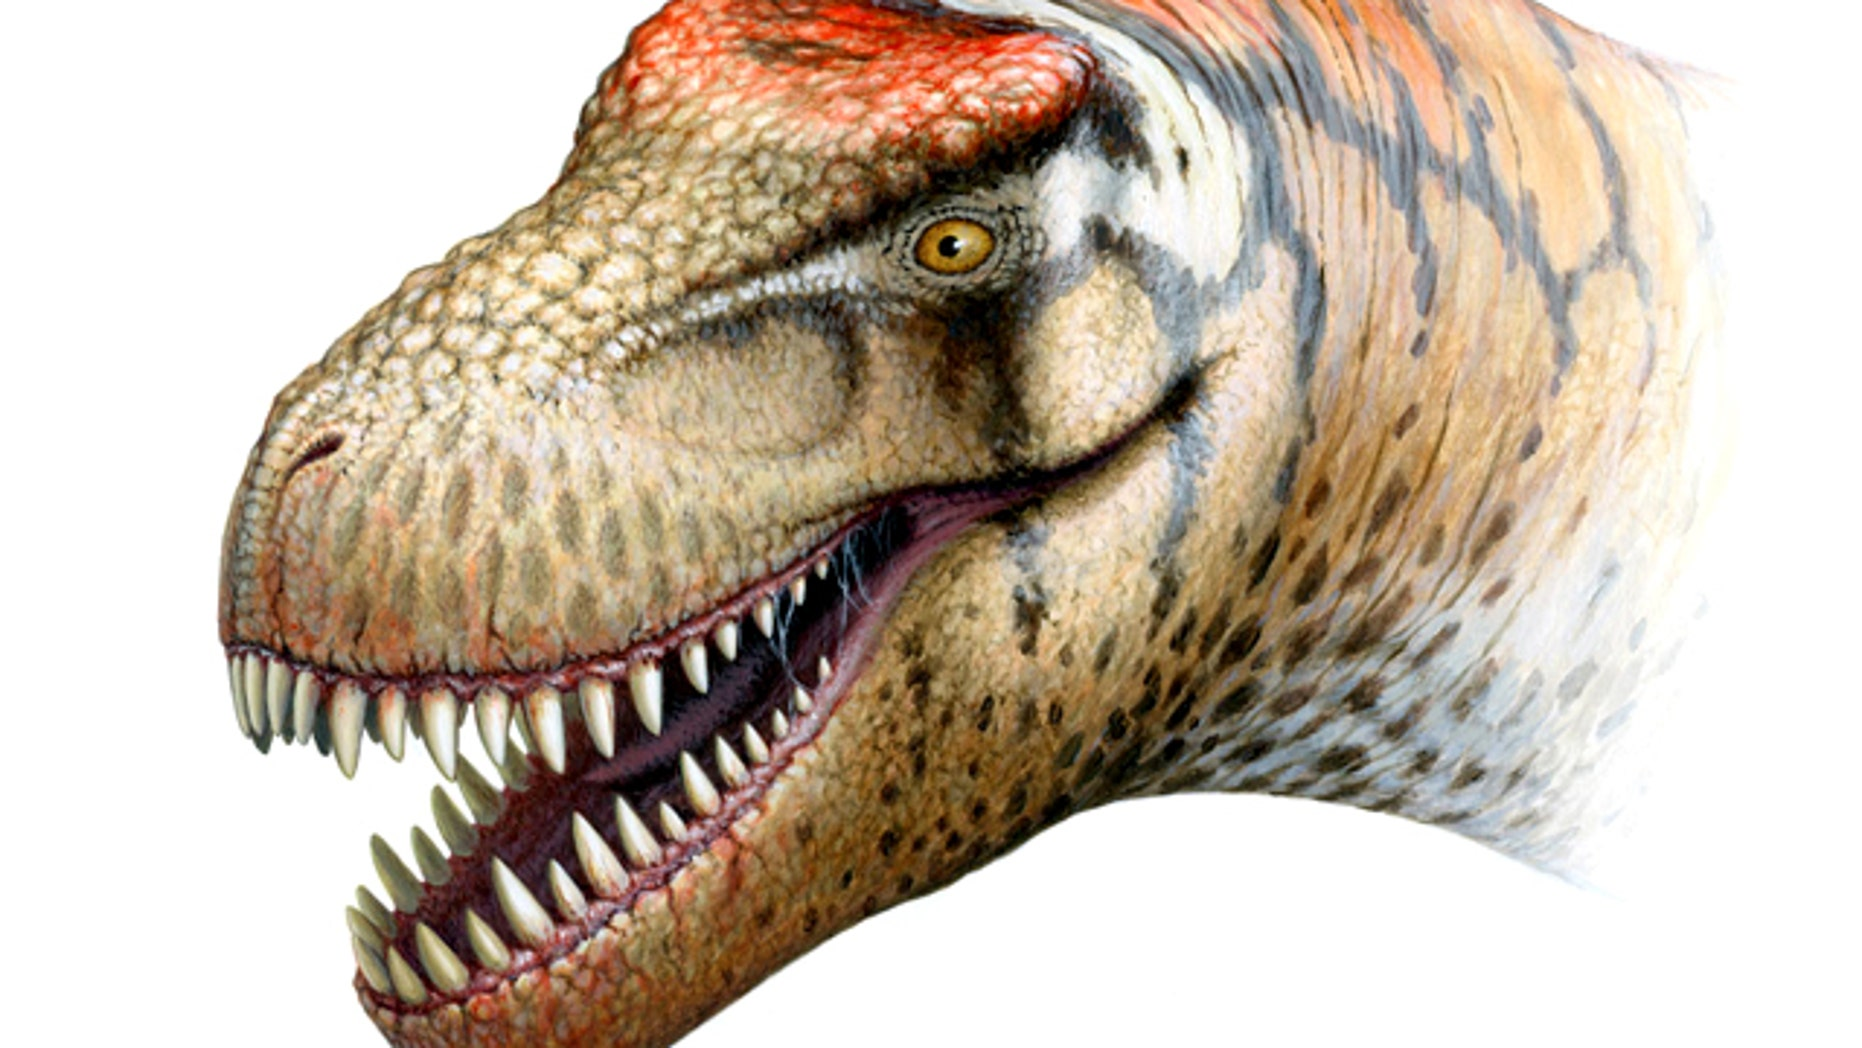 The newly identified T. rex relative probably weighed some 6 tons when it lived in what is now China.